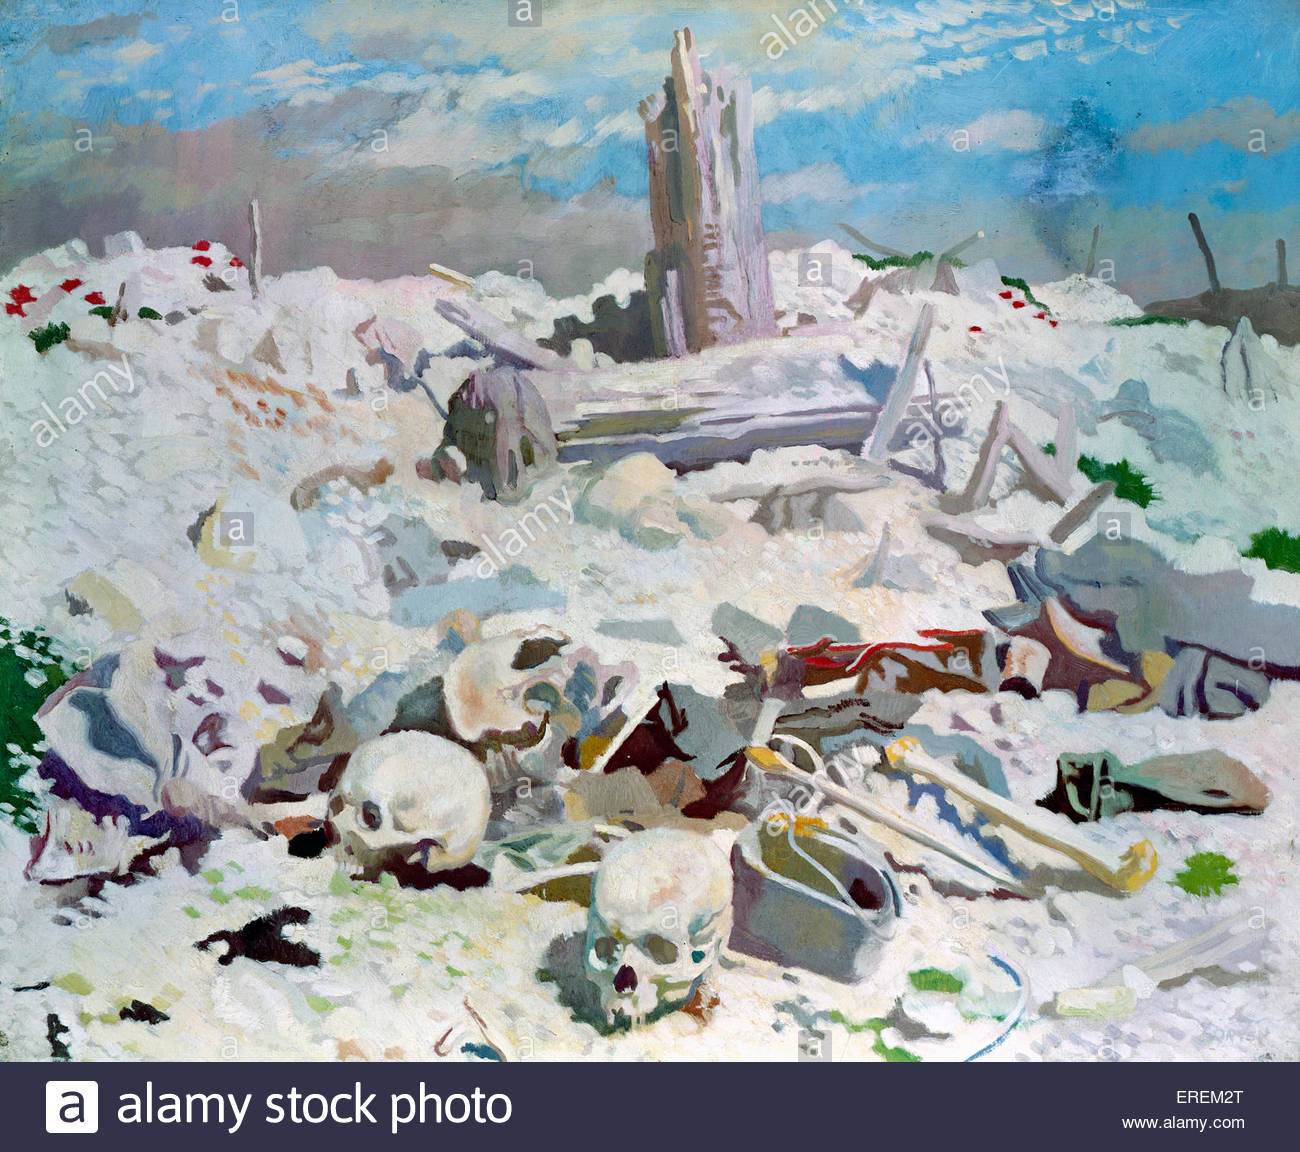 Thiepval  by Sir William Orpen, 1917 (painting). Scene from Word War I. Village in Picardie, France destroyed during - Stock Image